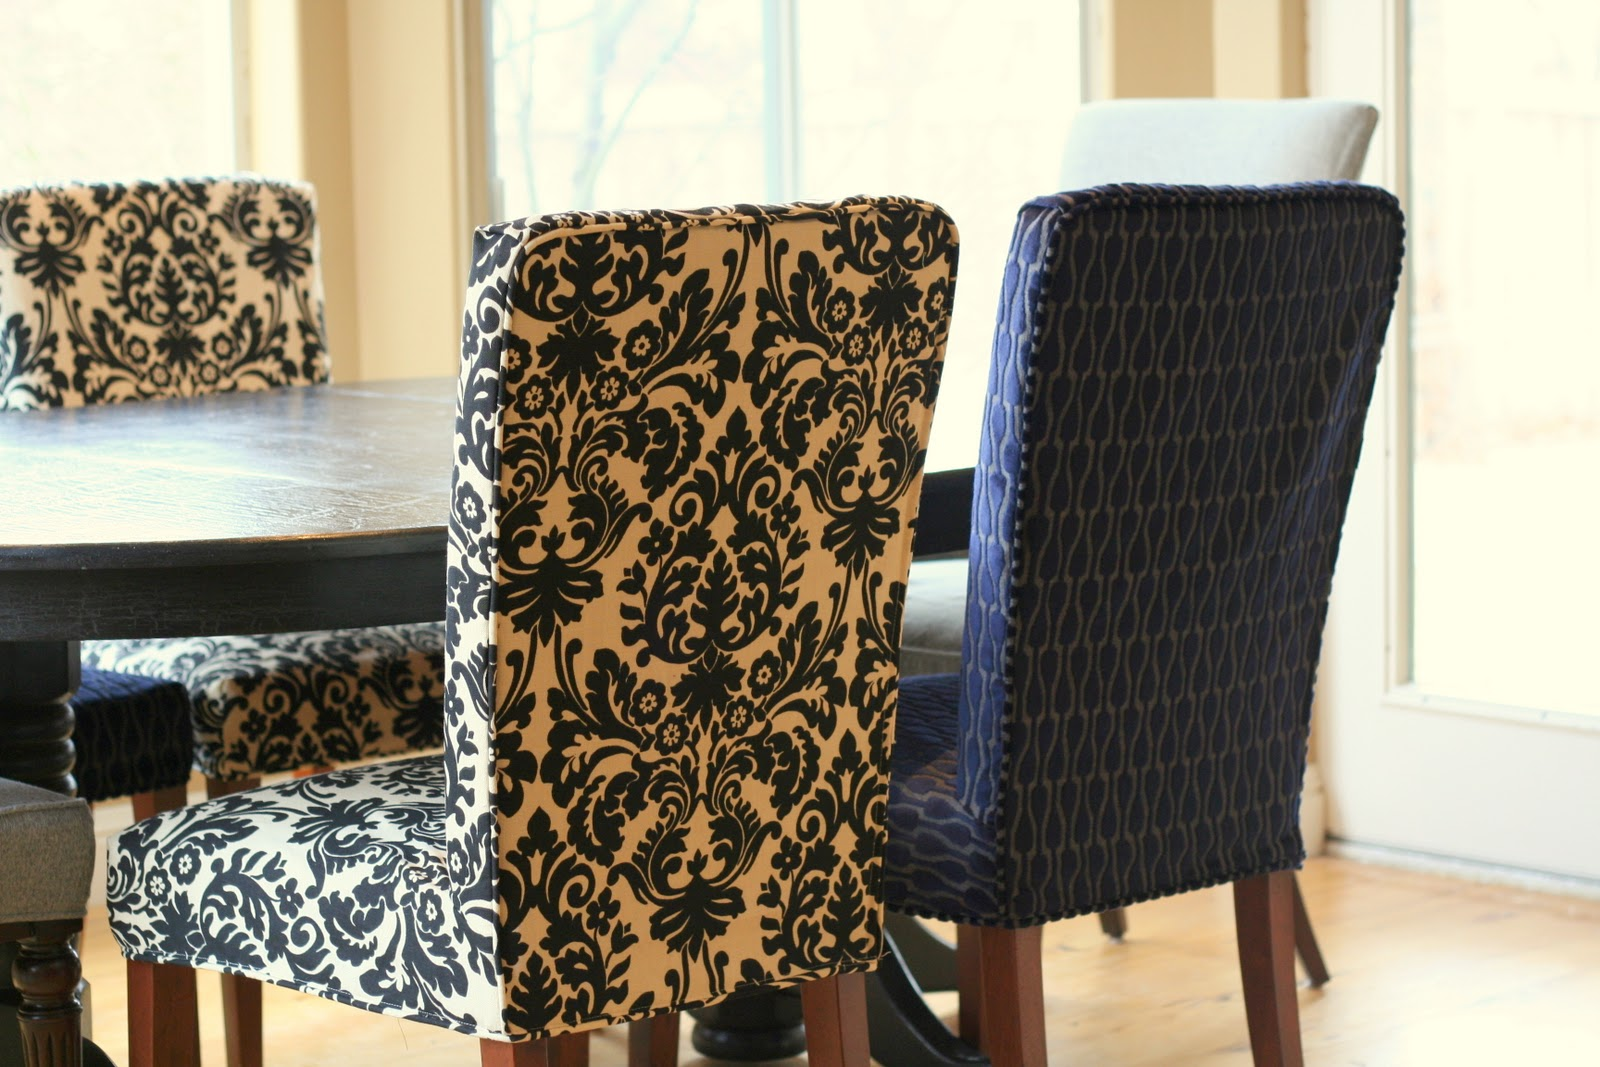 Groovy Perfect Parsons Chairs Target Homesfeed Andrewgaddart Wooden Chair Designs For Living Room Andrewgaddartcom